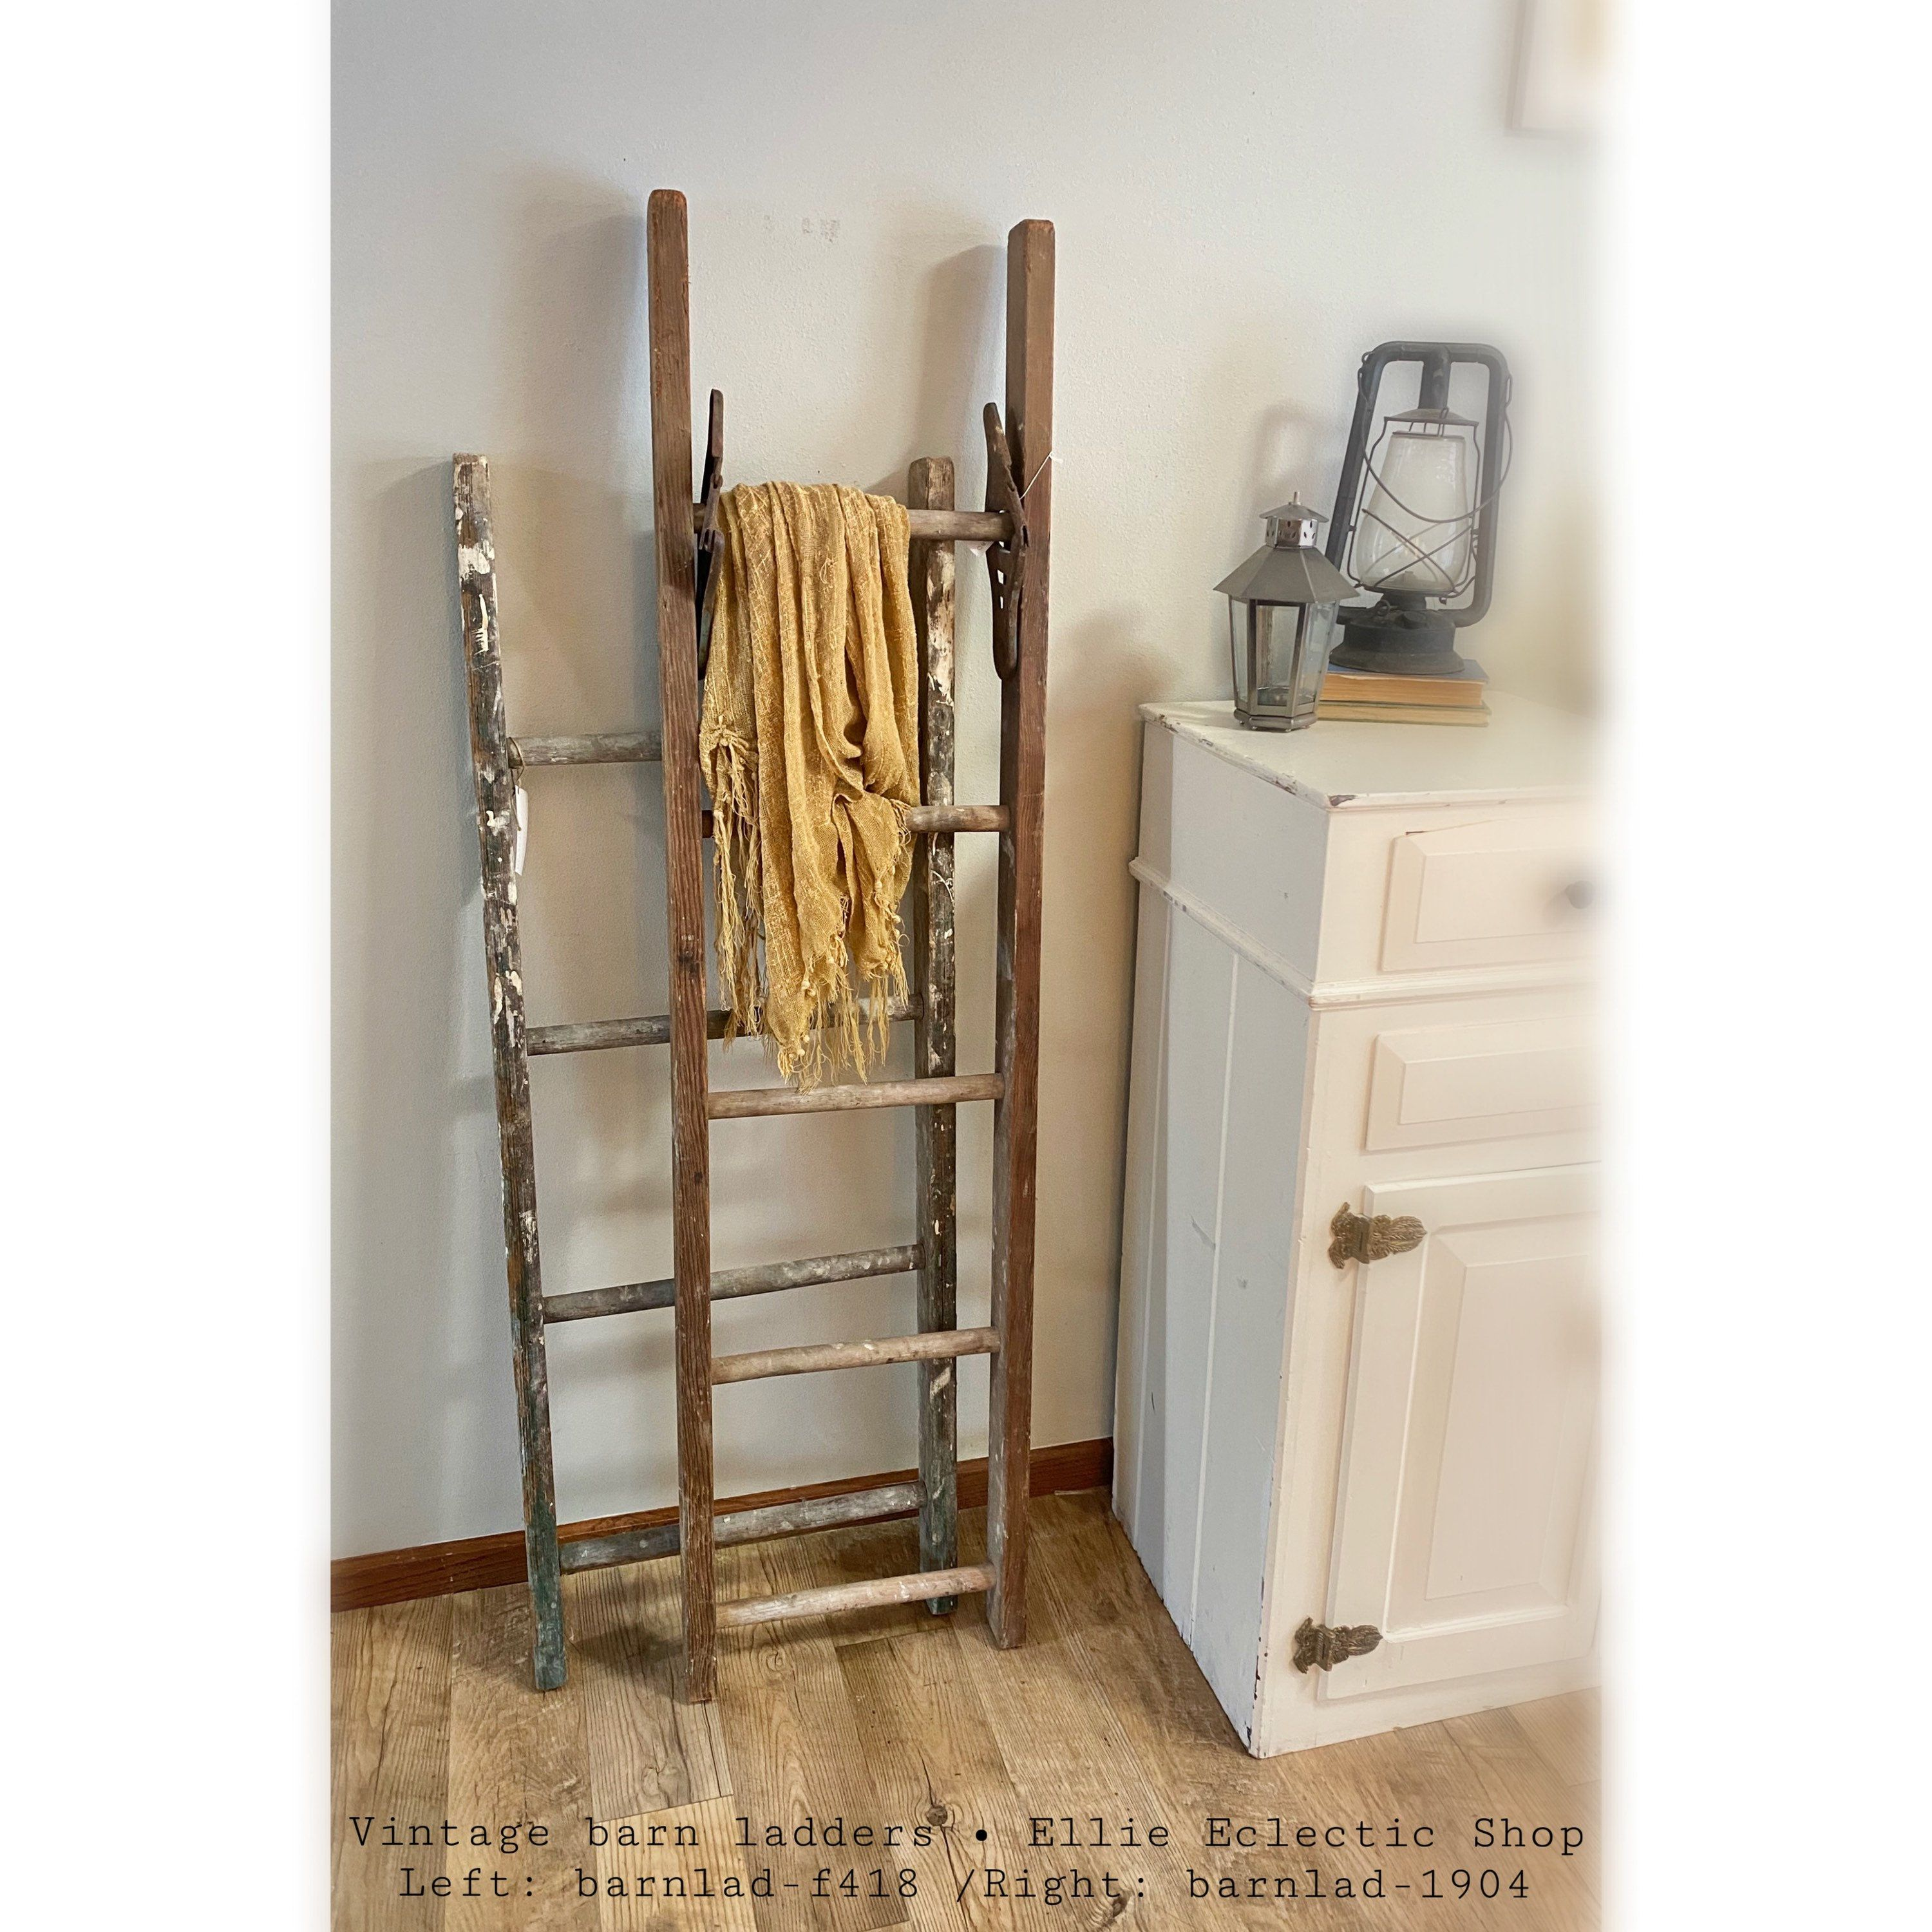 Rustic Blanket Ladder 5ft Vintage Wooden Barn Ladder Farmhouse Antique Distressed Towel Rack Decorative Country Decor Furniture In 2020 Rustic Blanket Ladder Wooden Barn Blanket Ladder